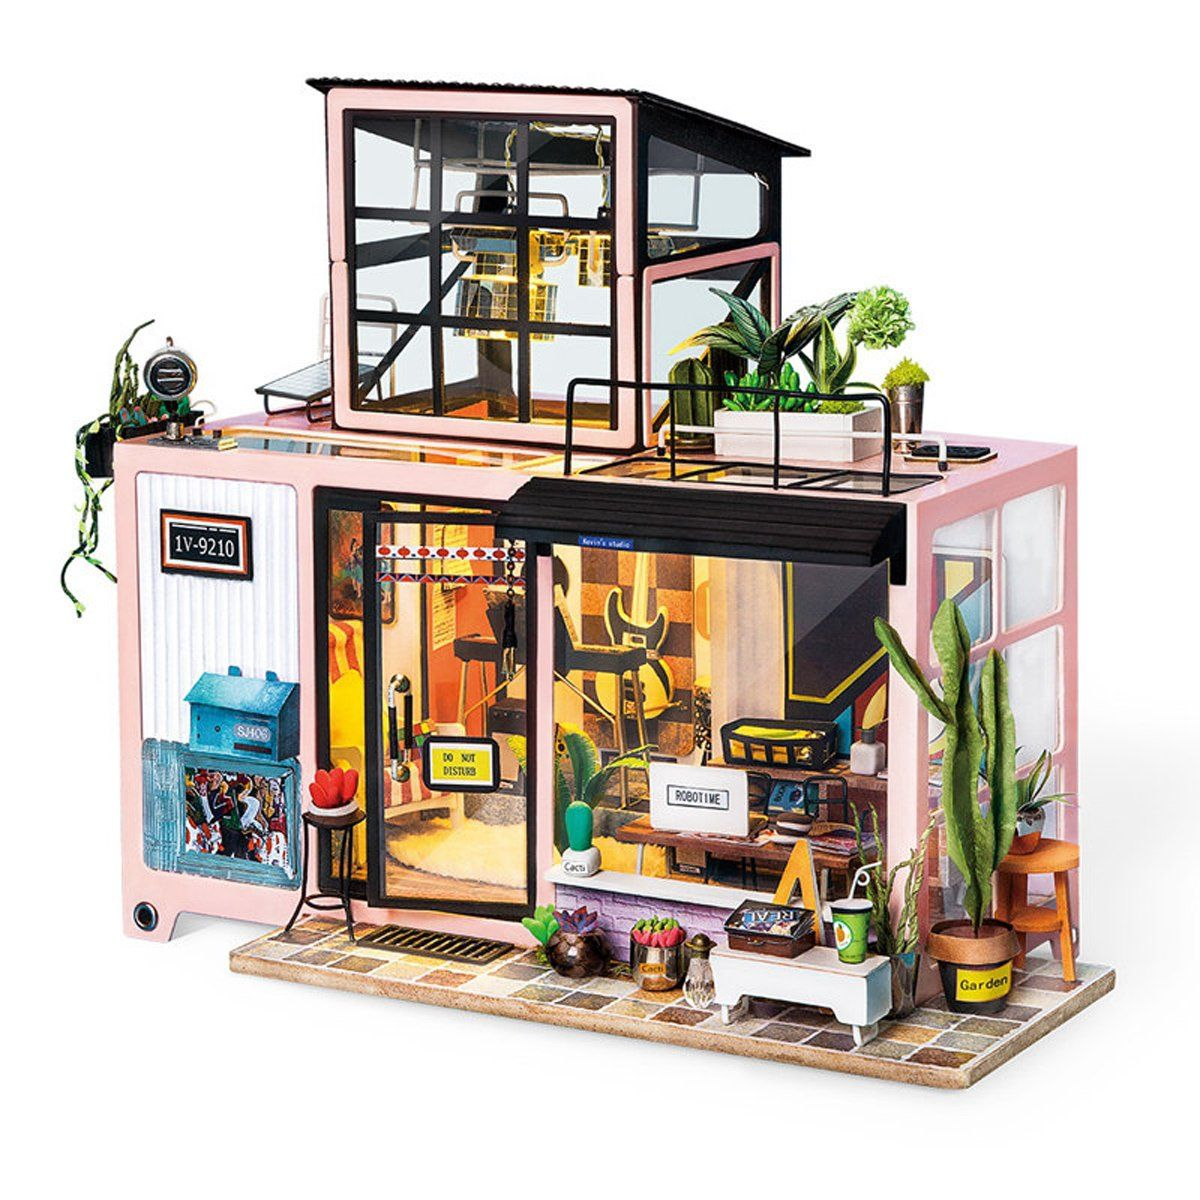 Rolife Diy Wooden Dollhouse Kits With Furnitures Lilys